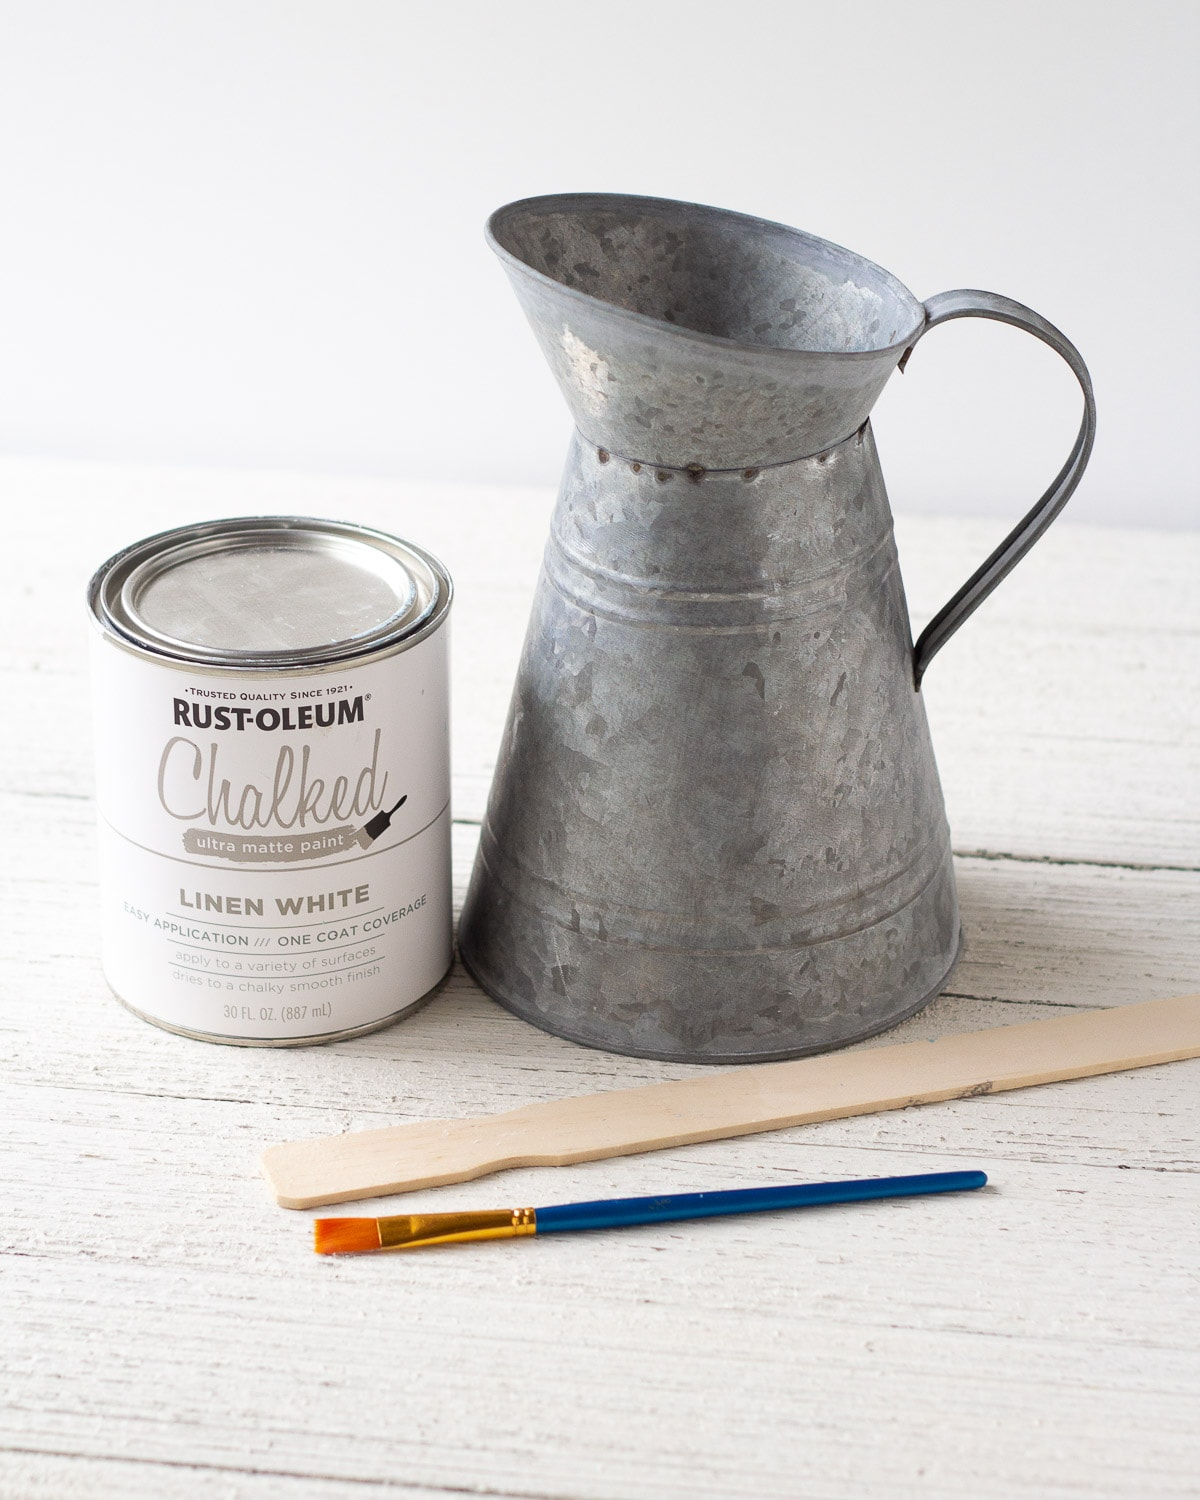 A galvanized pitcher, can of white chalk paint, paint stir stick, and a paintbrush.